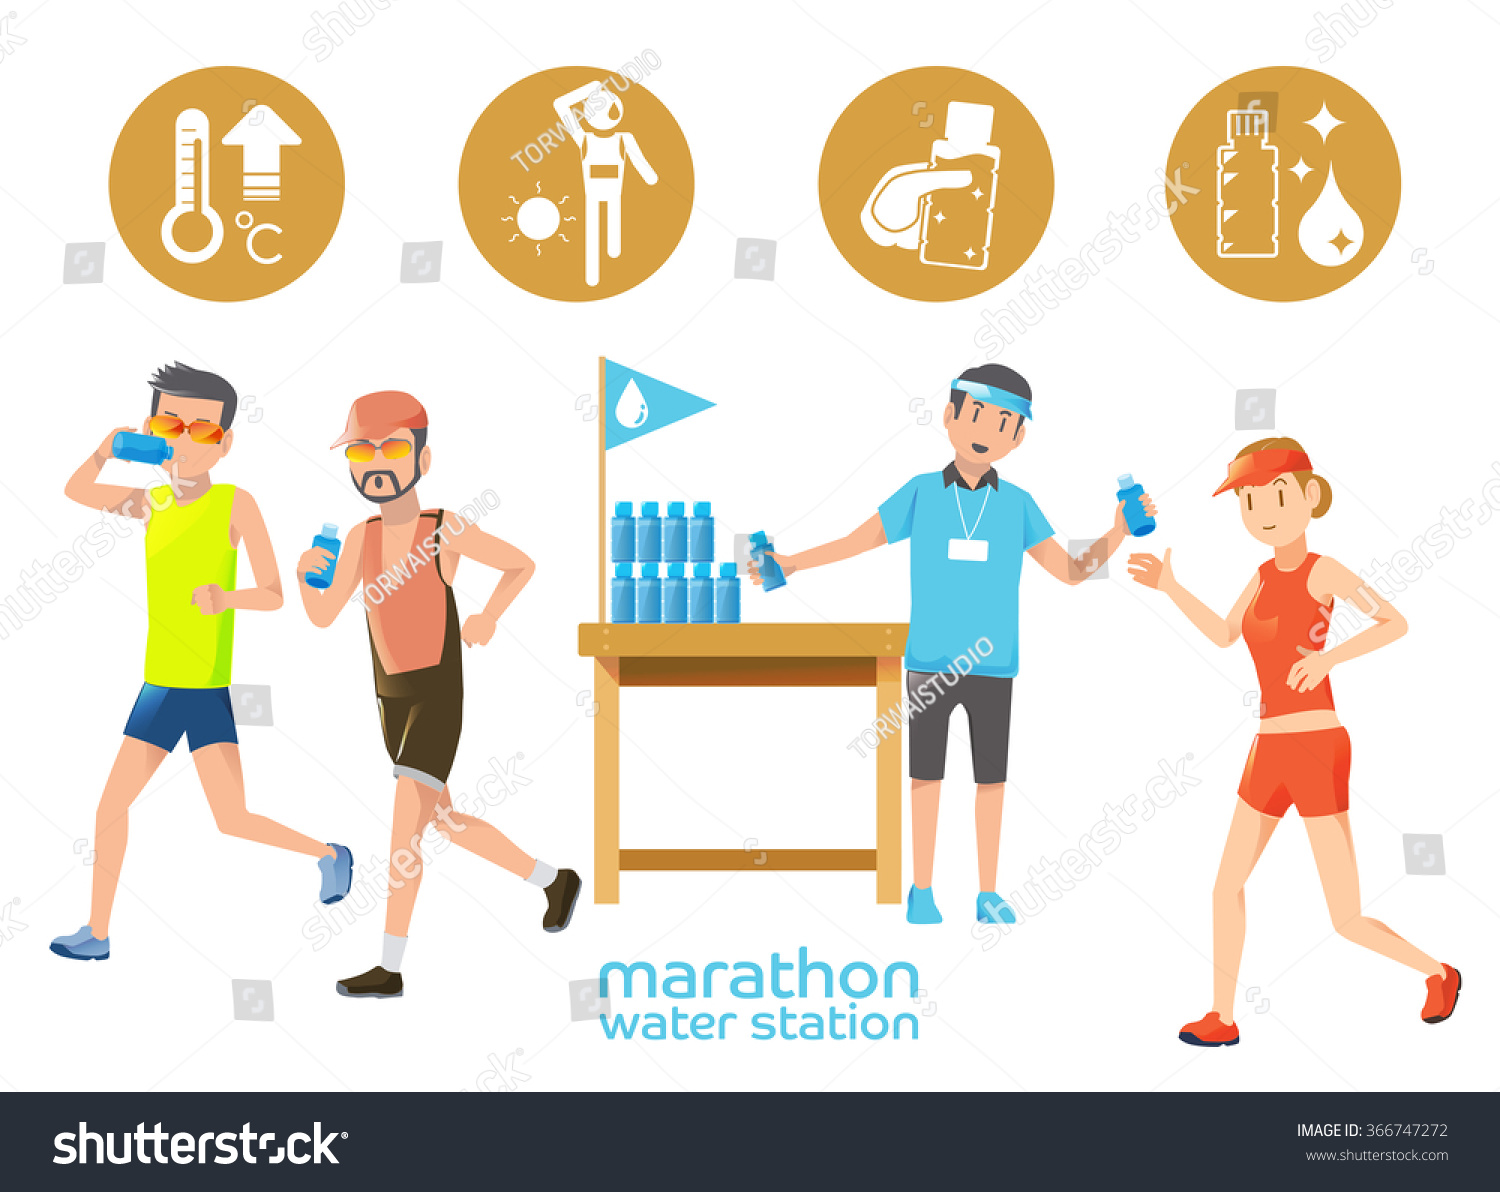 Marathon Icons Water Station Thirsty Hot Stock Vector 366747272 ...